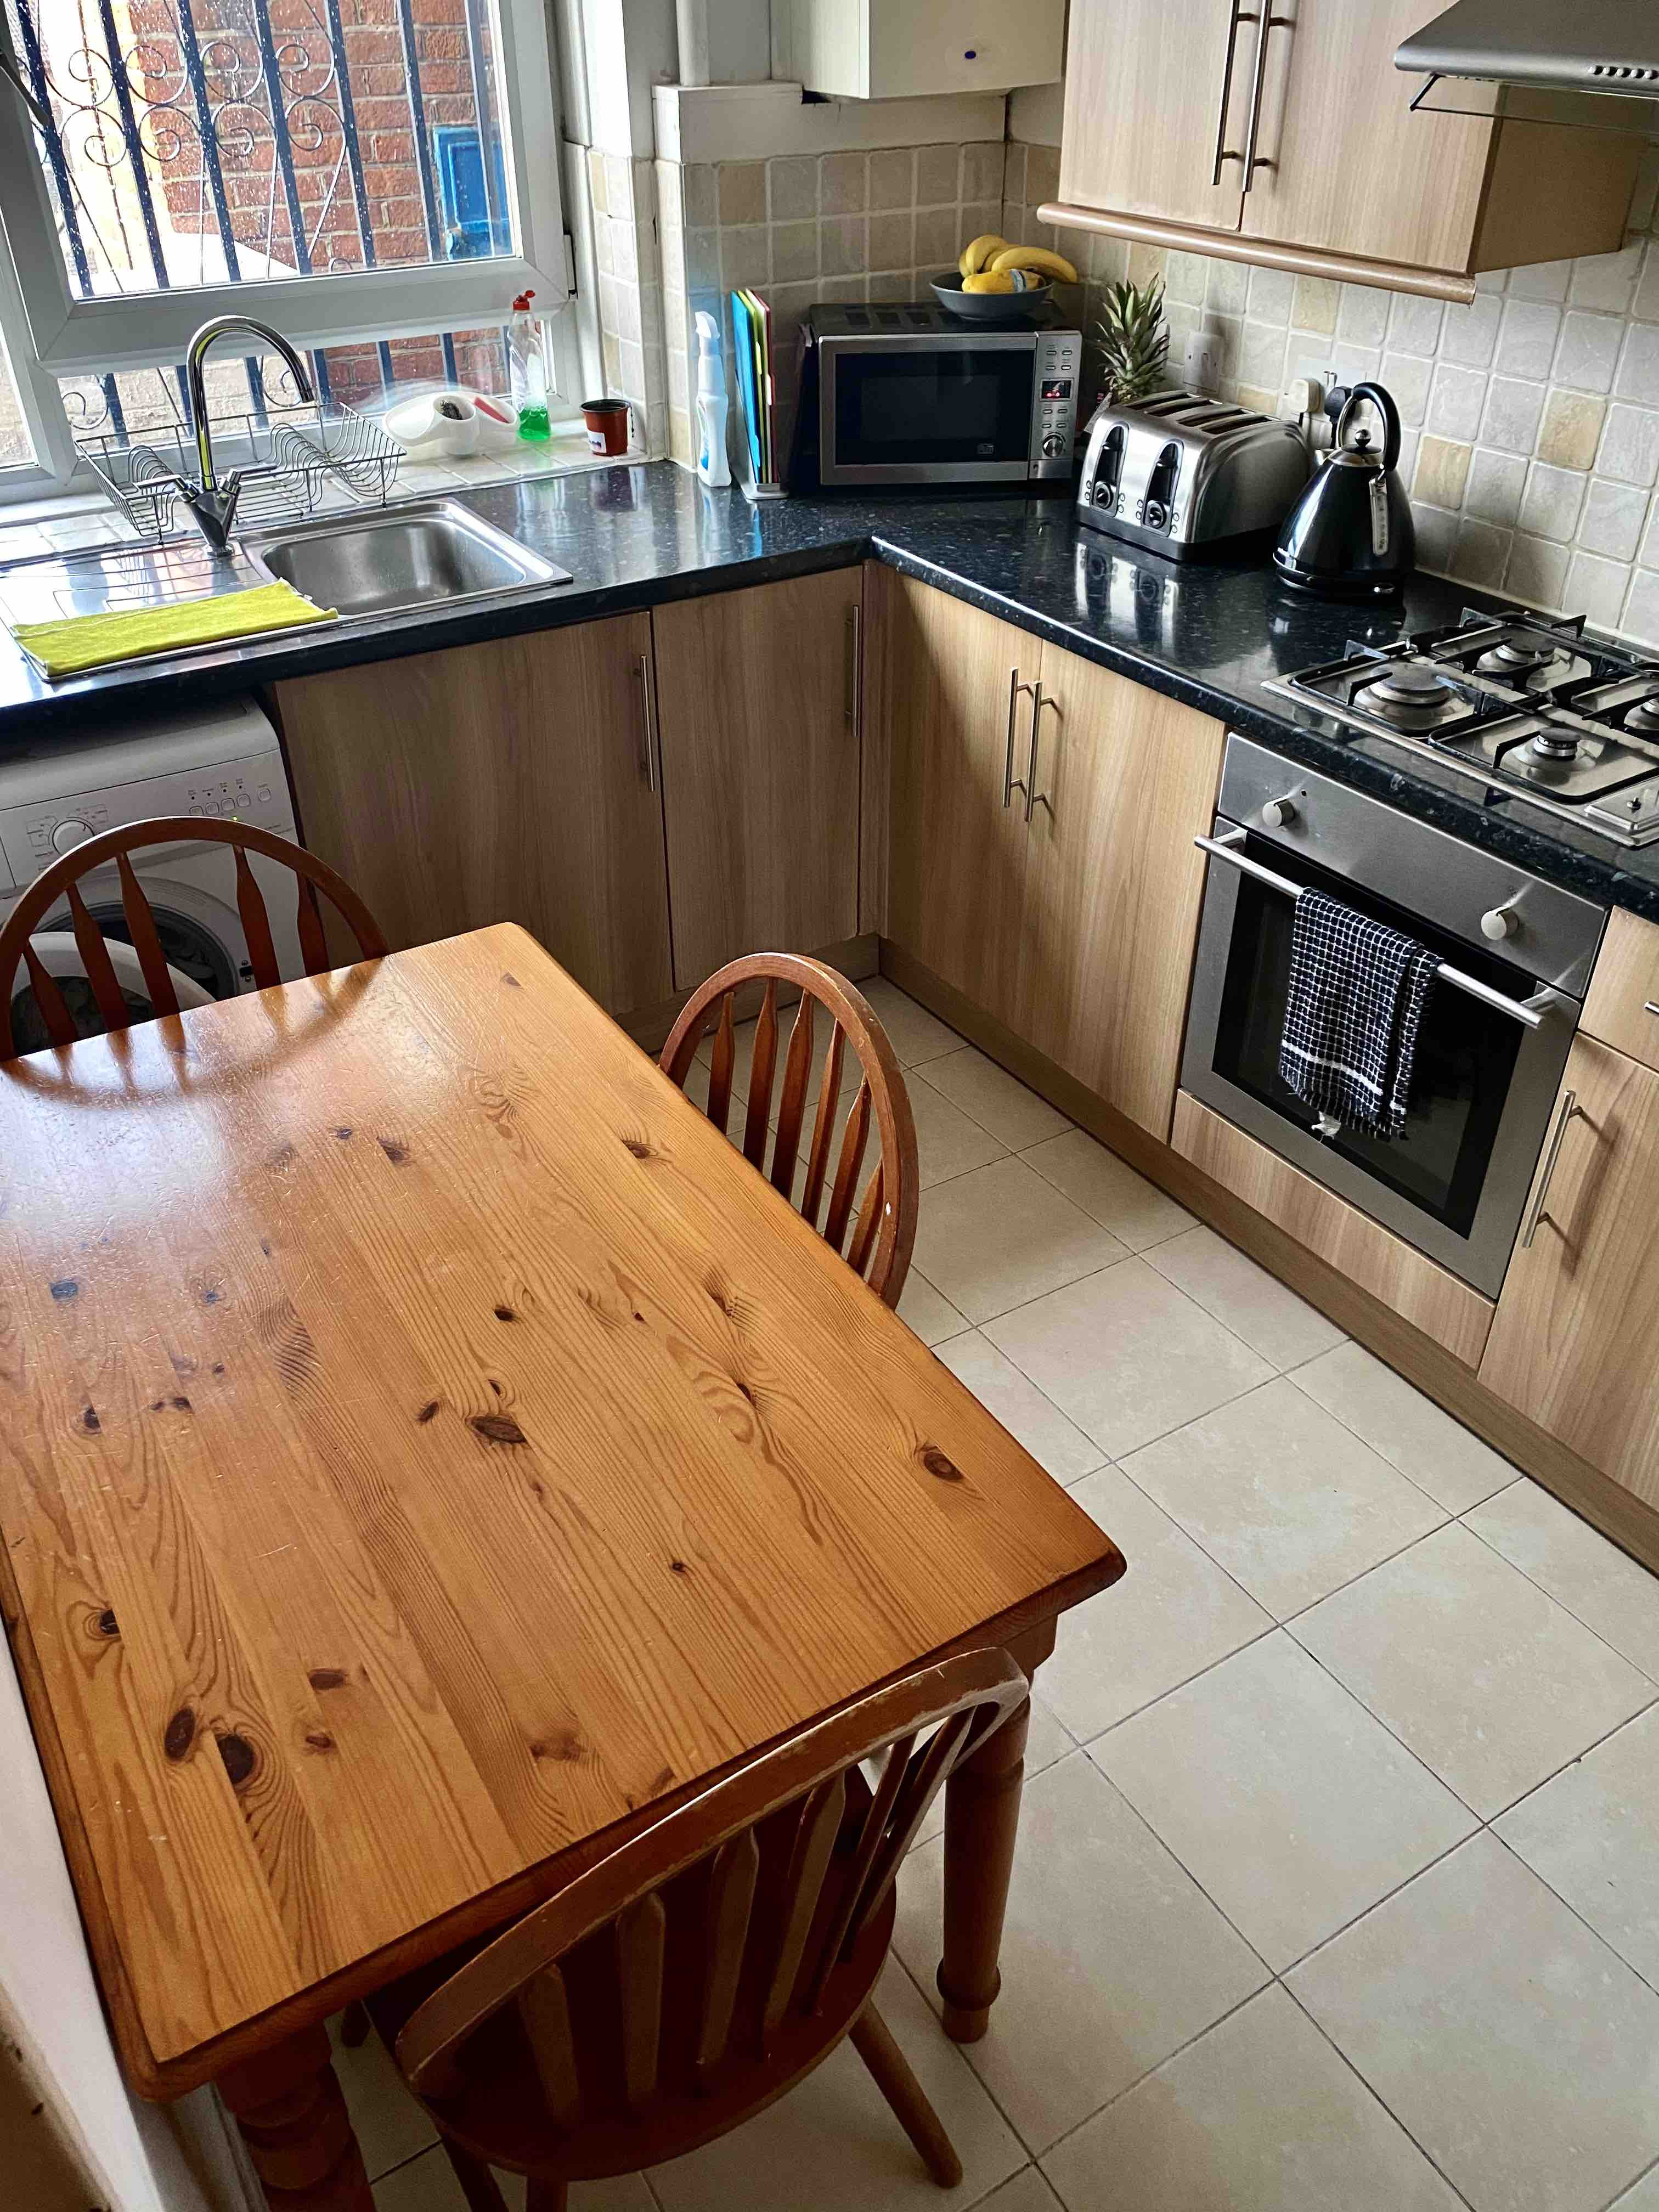 1 room in St. Dunstan's and Stepney Green, London, E1 4LA RoomsLocal image